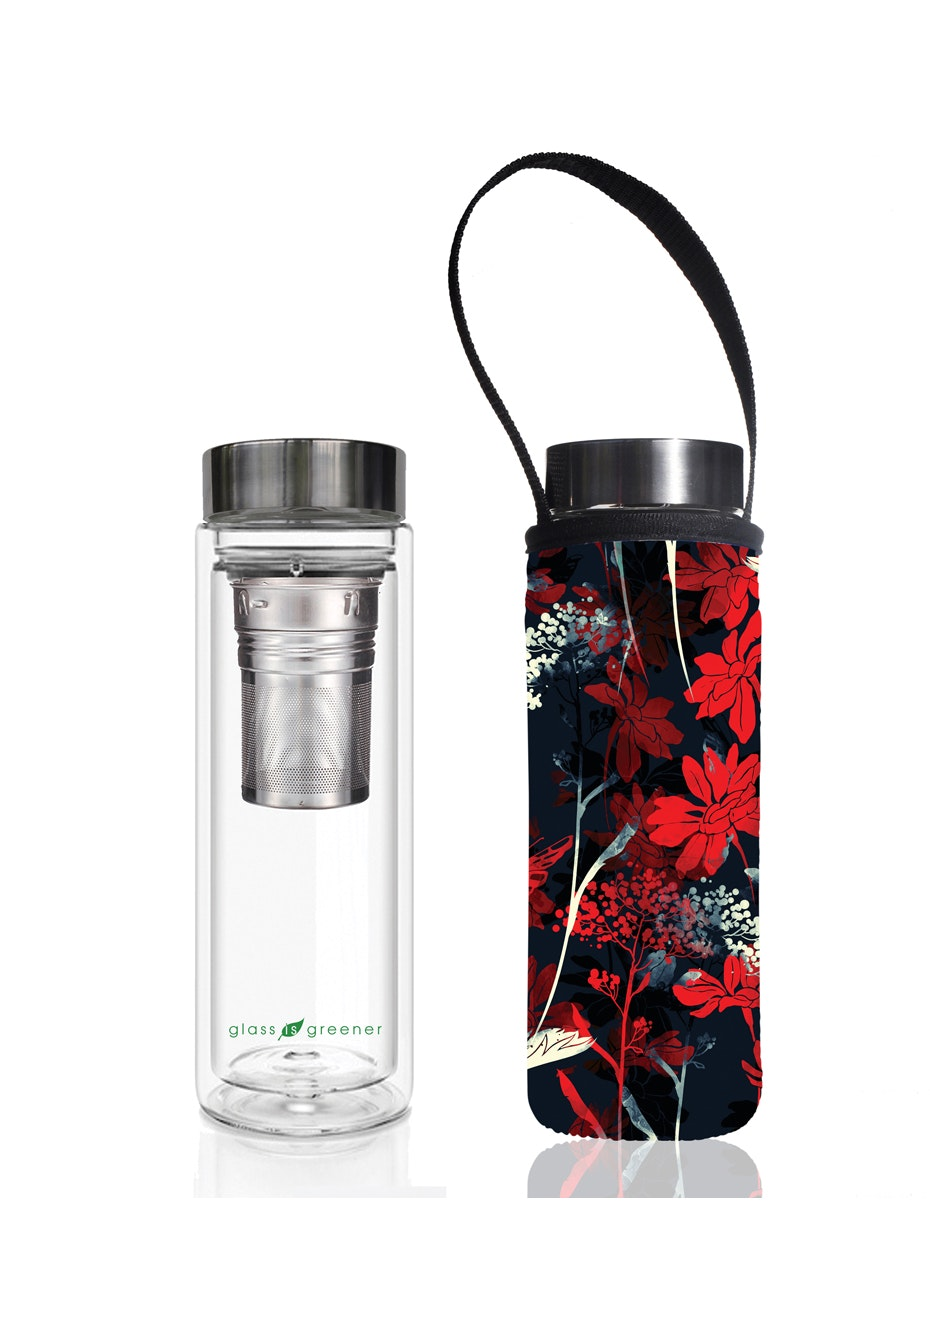 BBBYO - Glass Is Greener double-wall tea flask 500 ml + Carry Pouch (Red Butterfly Print) -500 ml